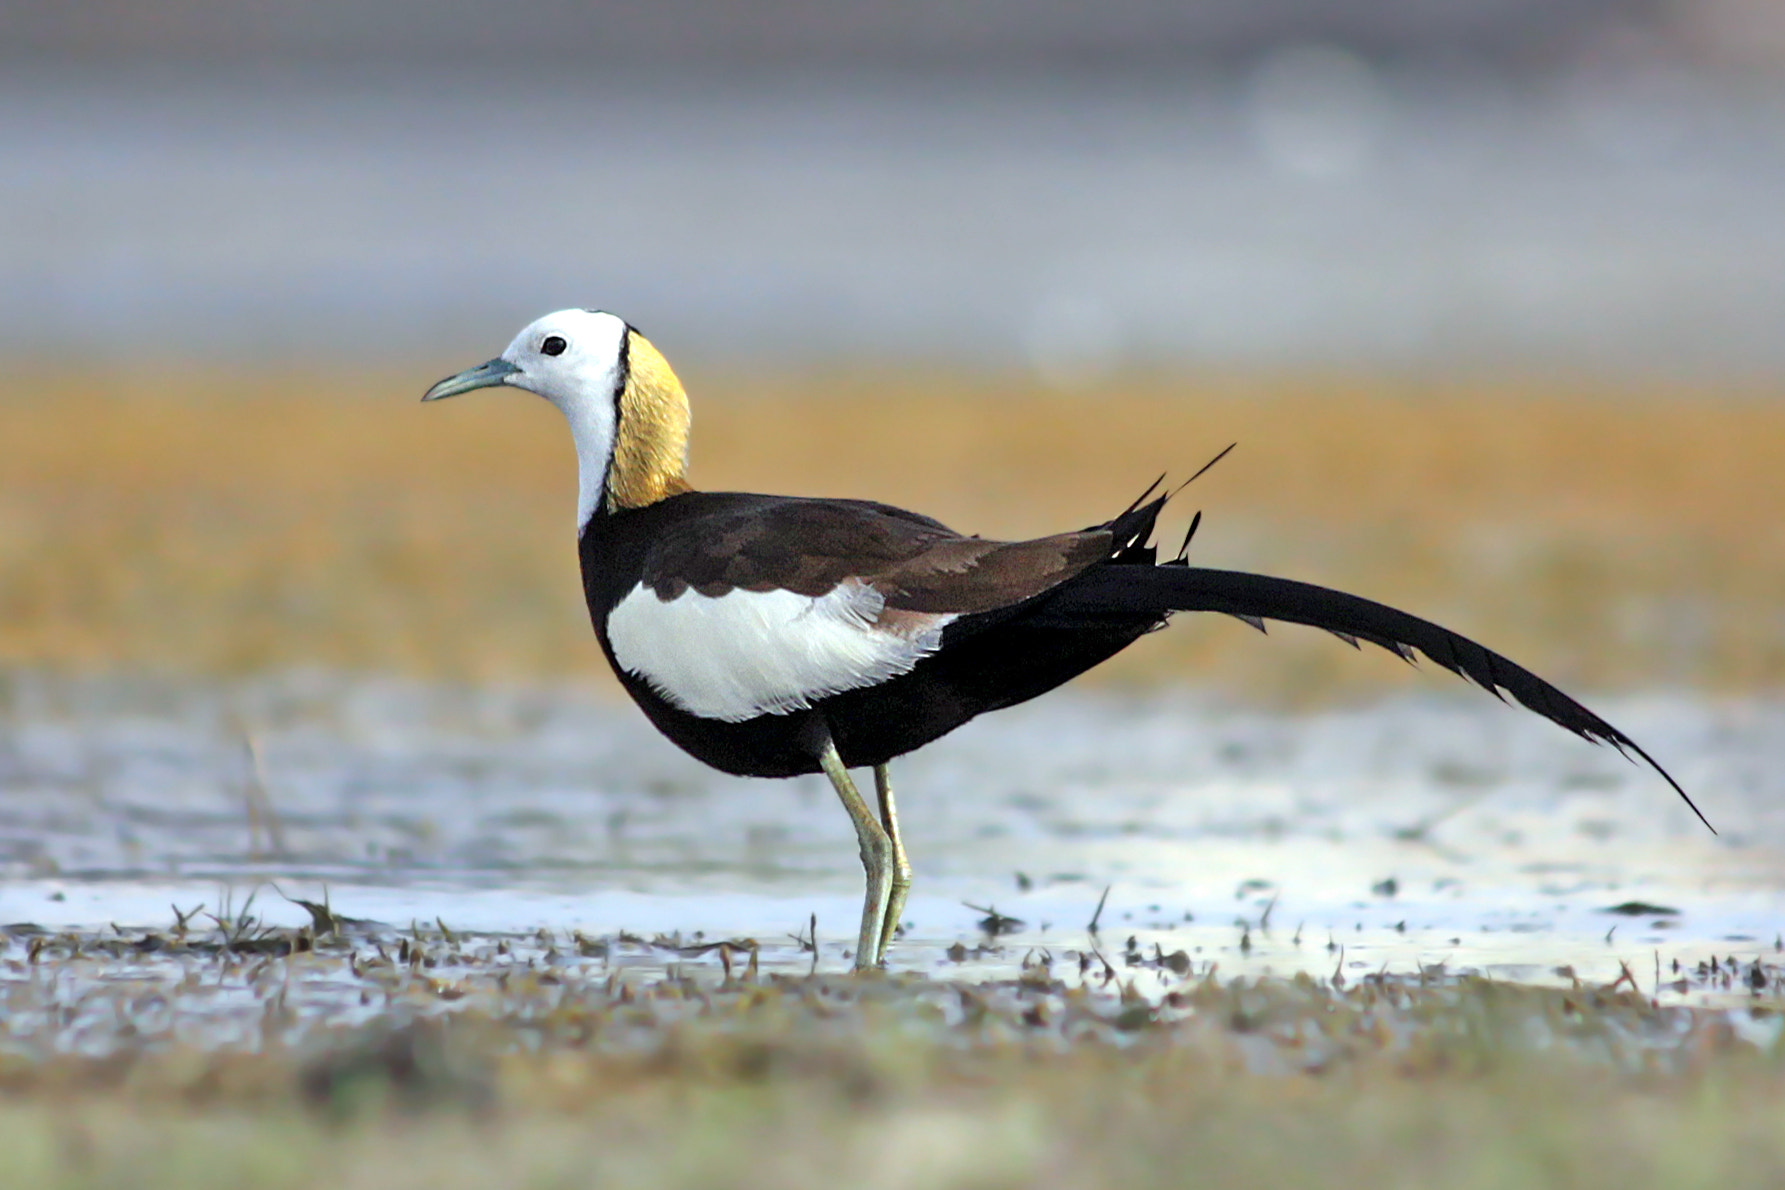 Photograph The pheasant-tailed jacana (Hydrophasianus chirurgus) by Subhash Masih on 500px